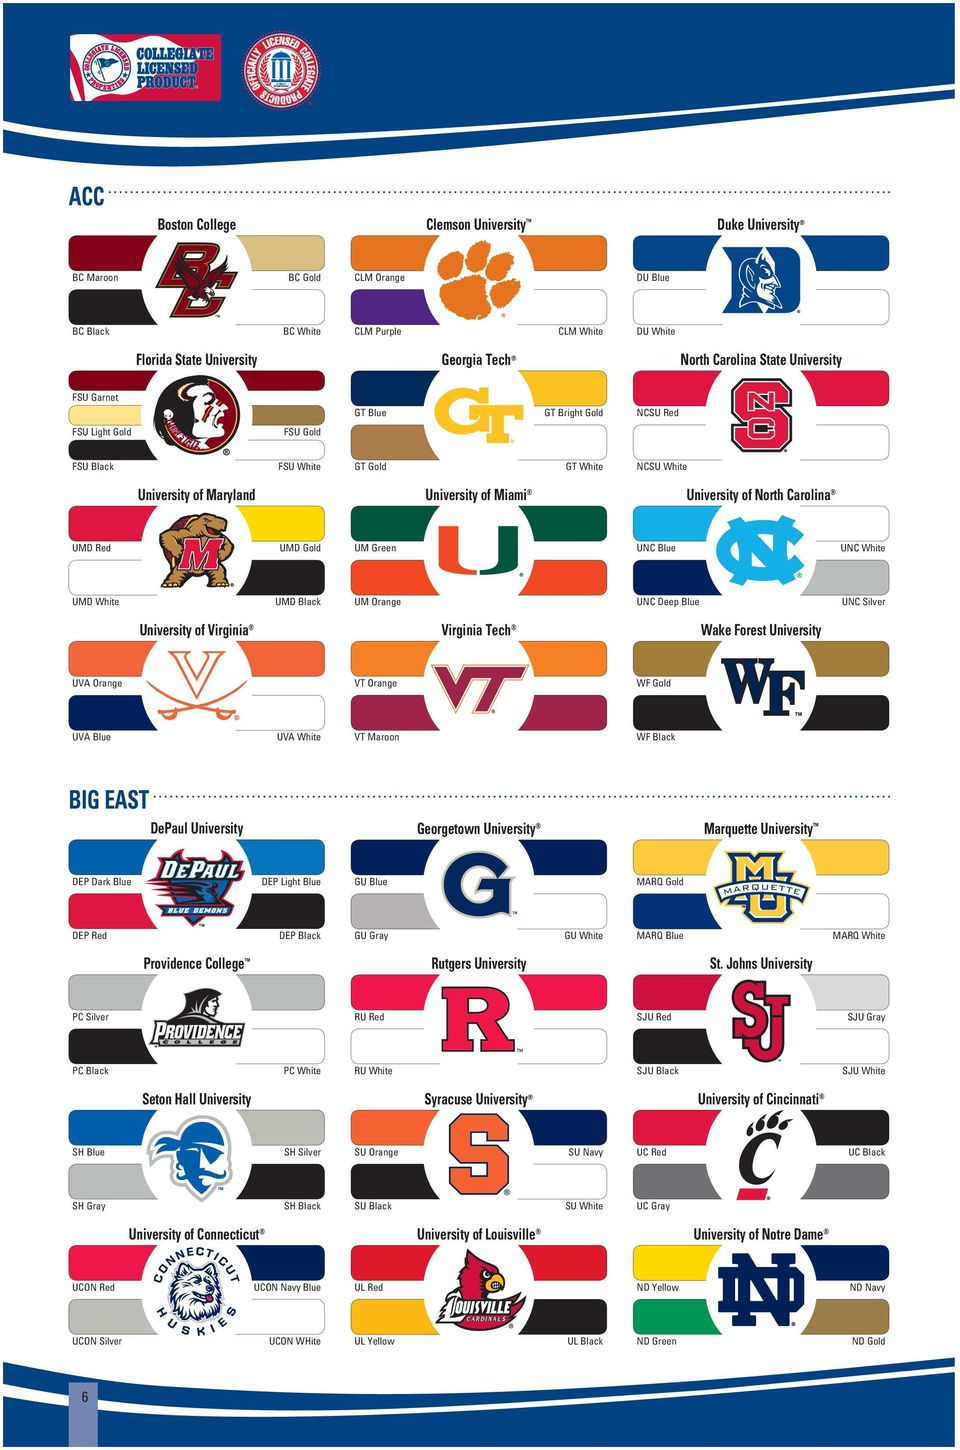 UMD Red UMD Gold UM Green UNC Blue UNC White UMD White UMD Black UM Orange UNC Deep Blue UNC Silver University of Virginia Virginia Tech Wake Forest University UVA Orange VT Orange WF Gold UVA Blue